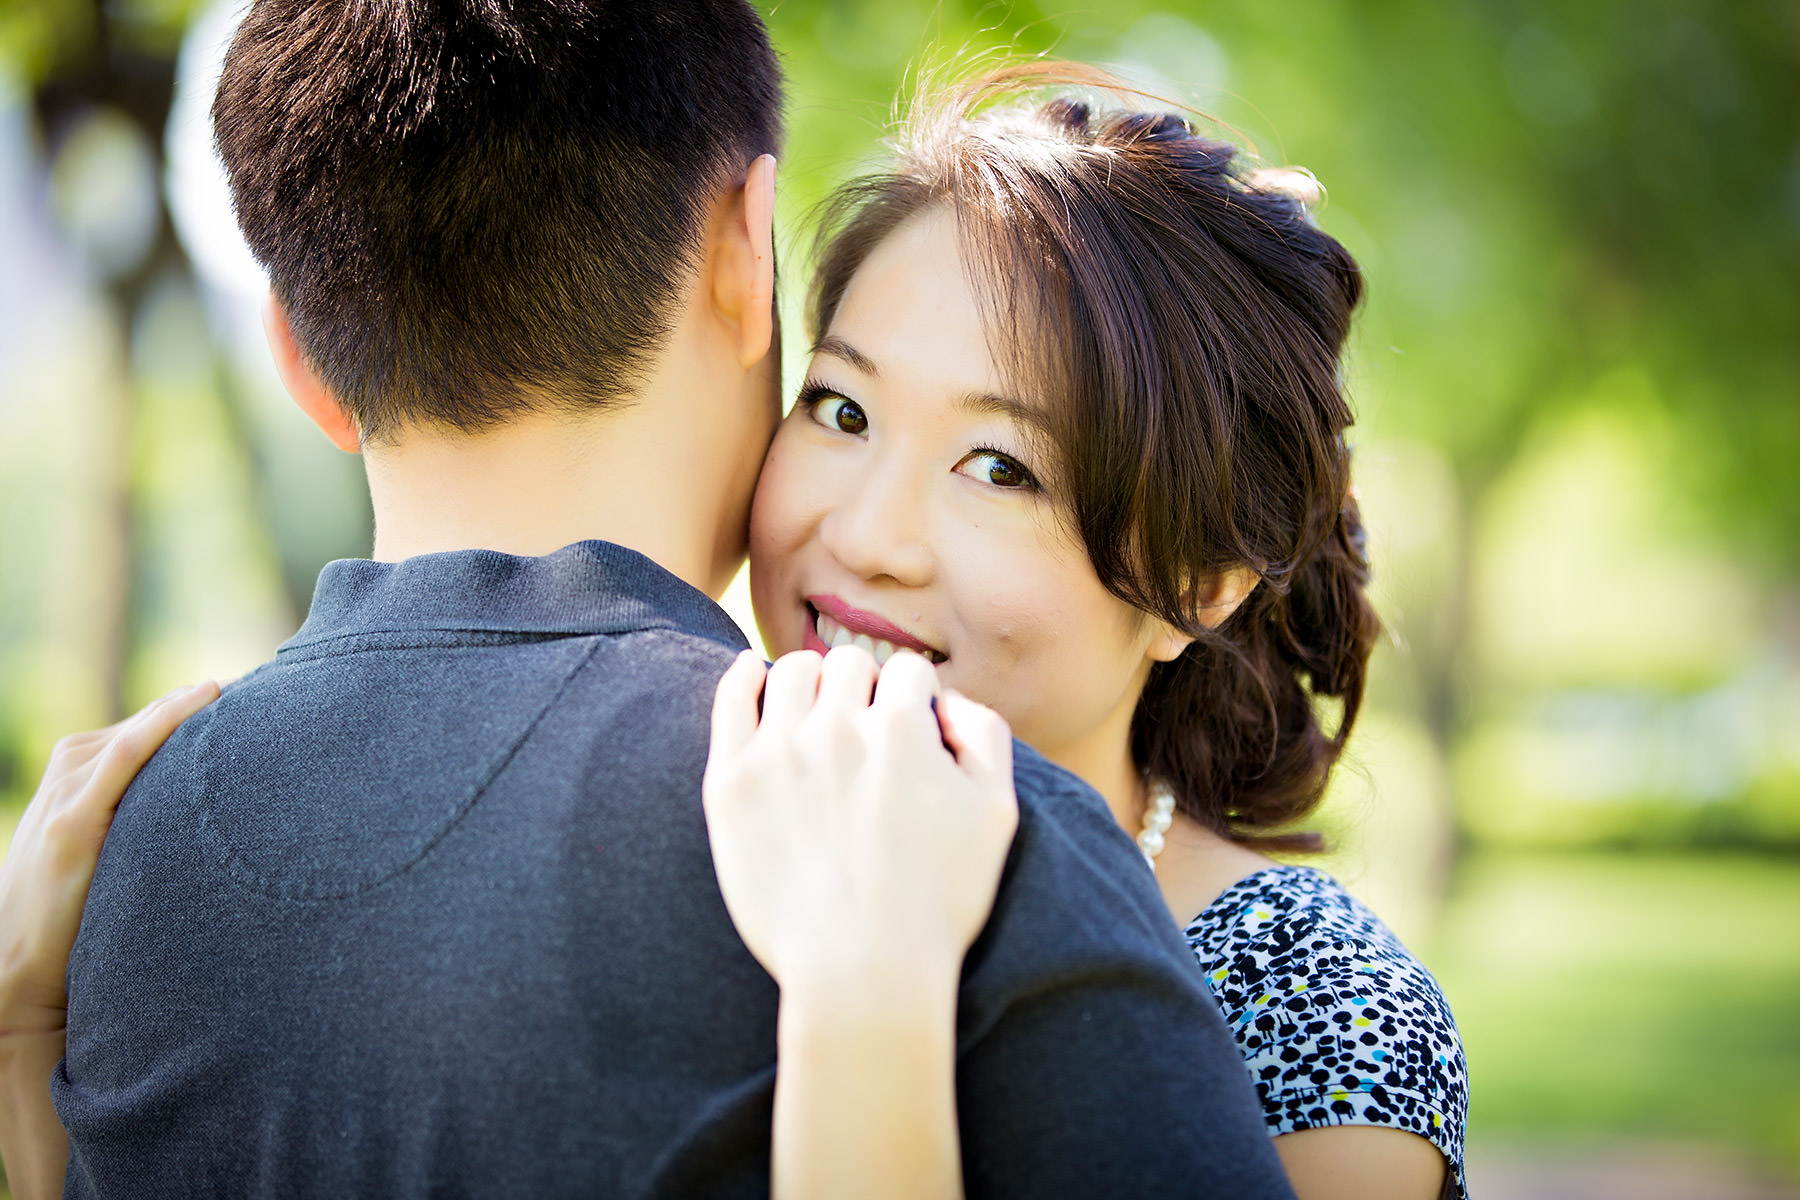 Lincoln Park Engagement Photography at Farmers Market – Angela + Chris